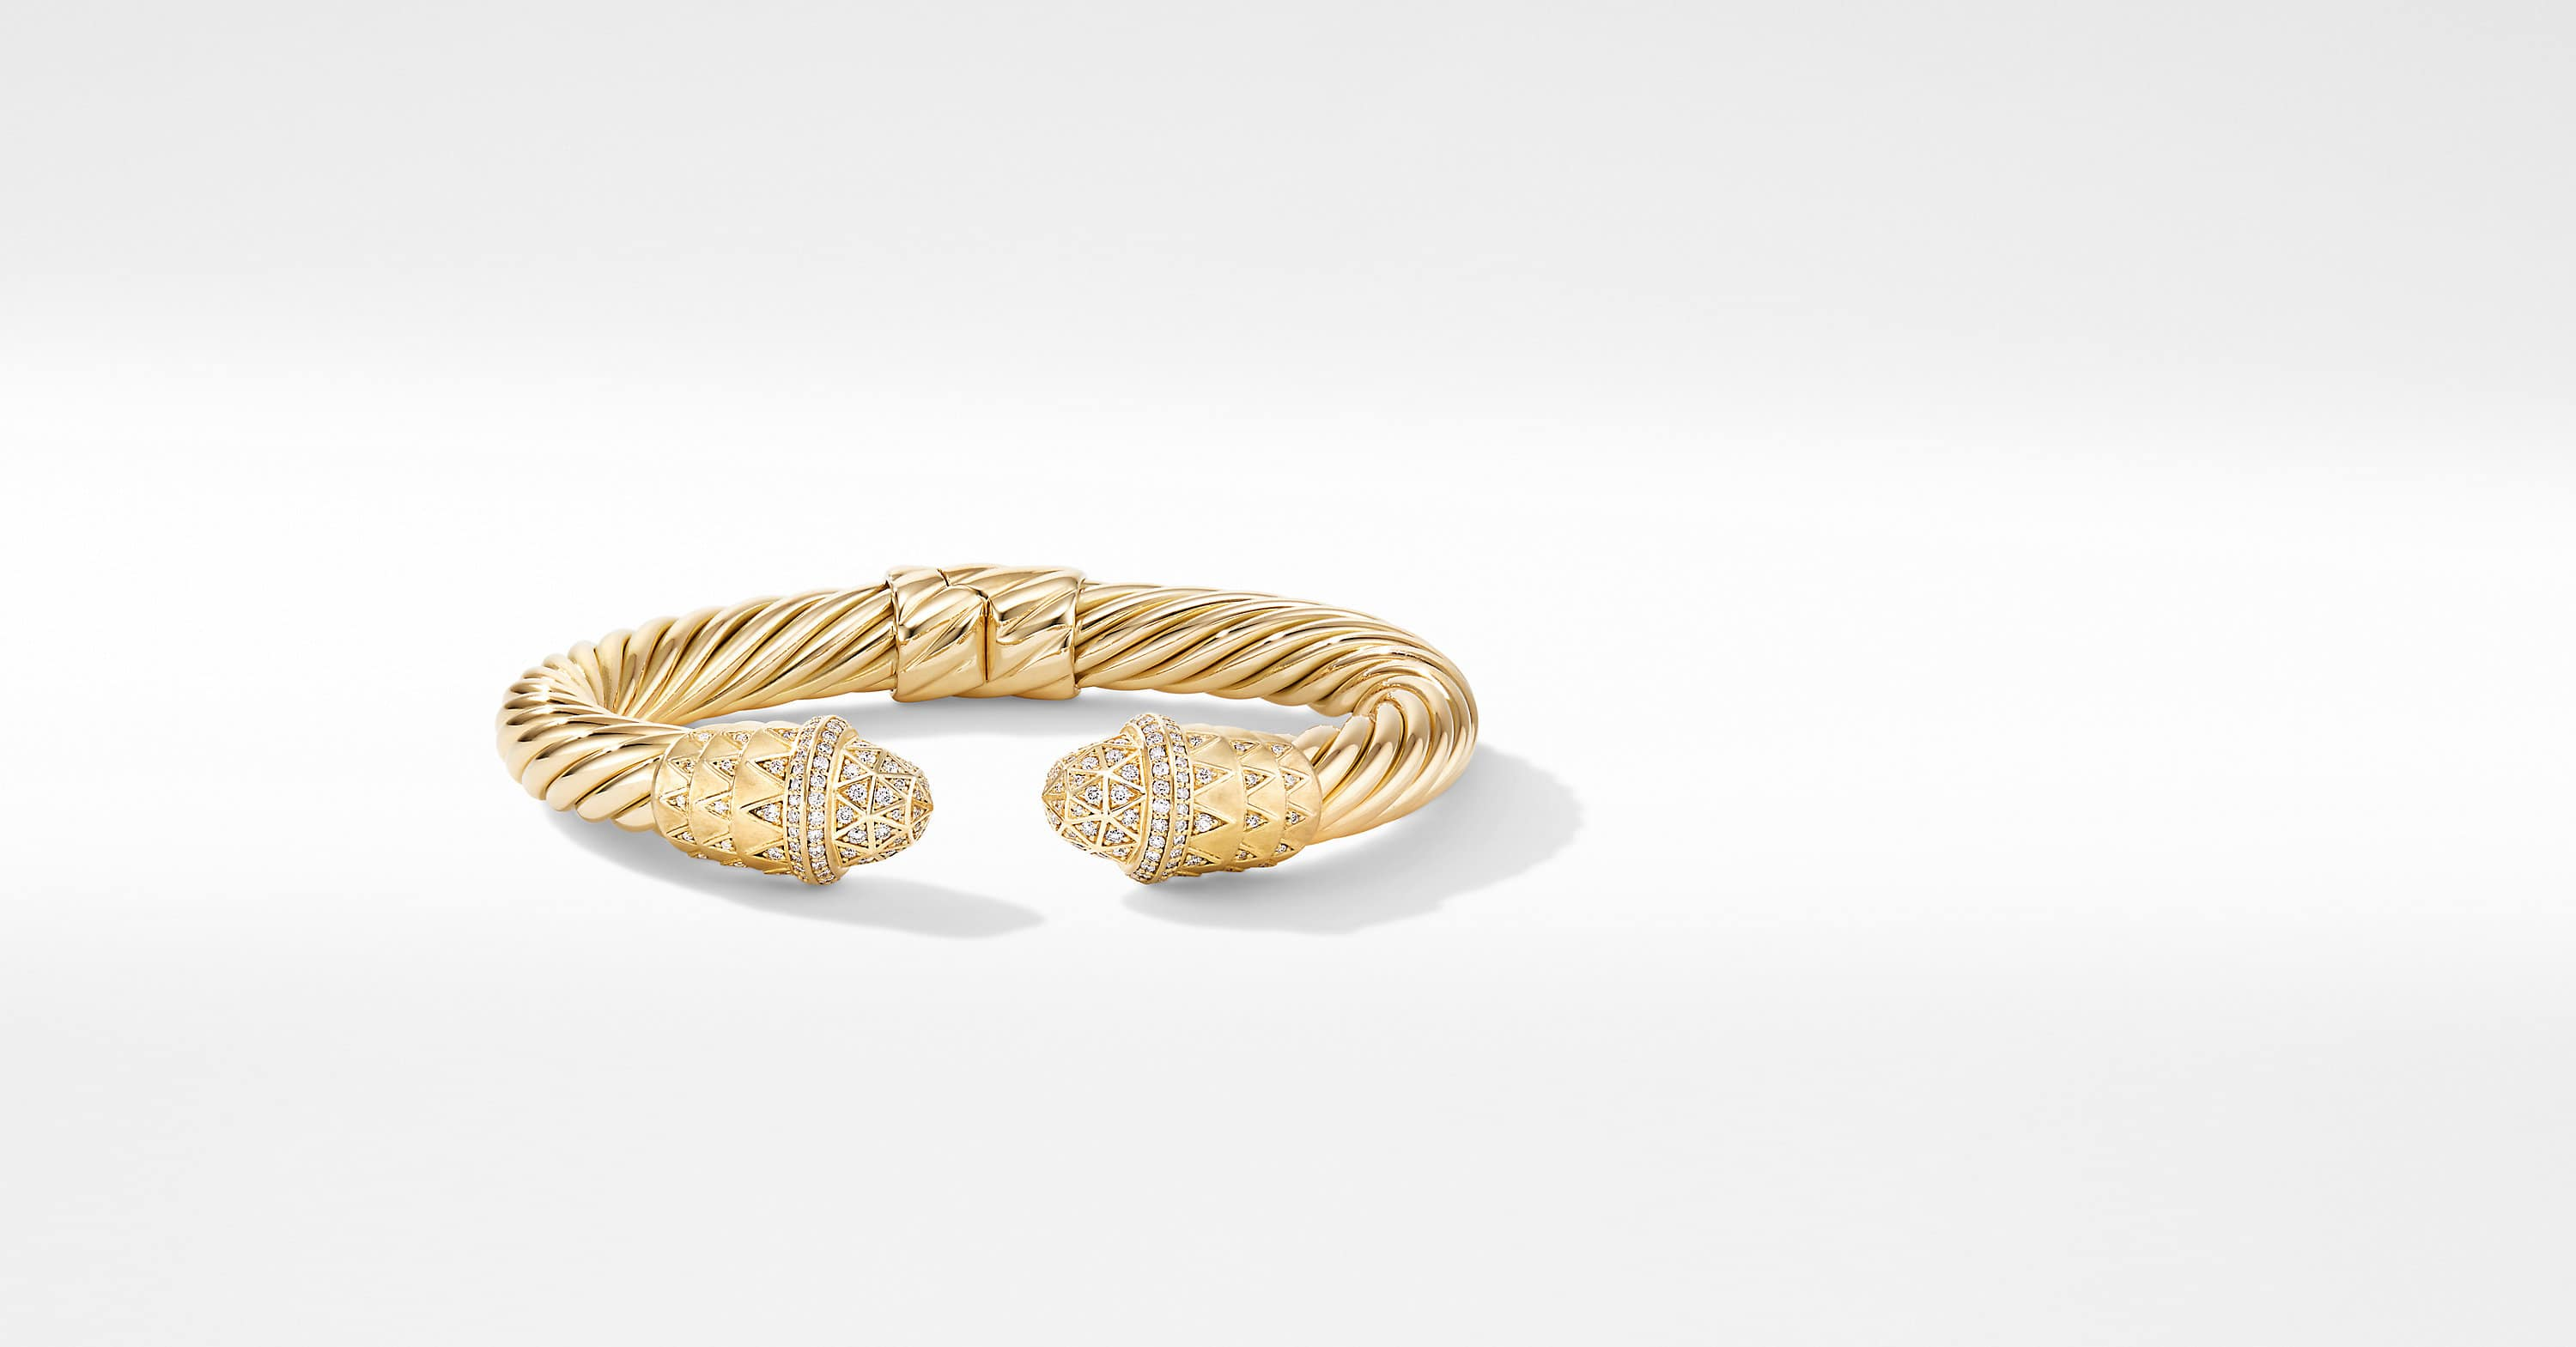 Deco Cable Bracelet in 18K Yellow Gold with Pavé